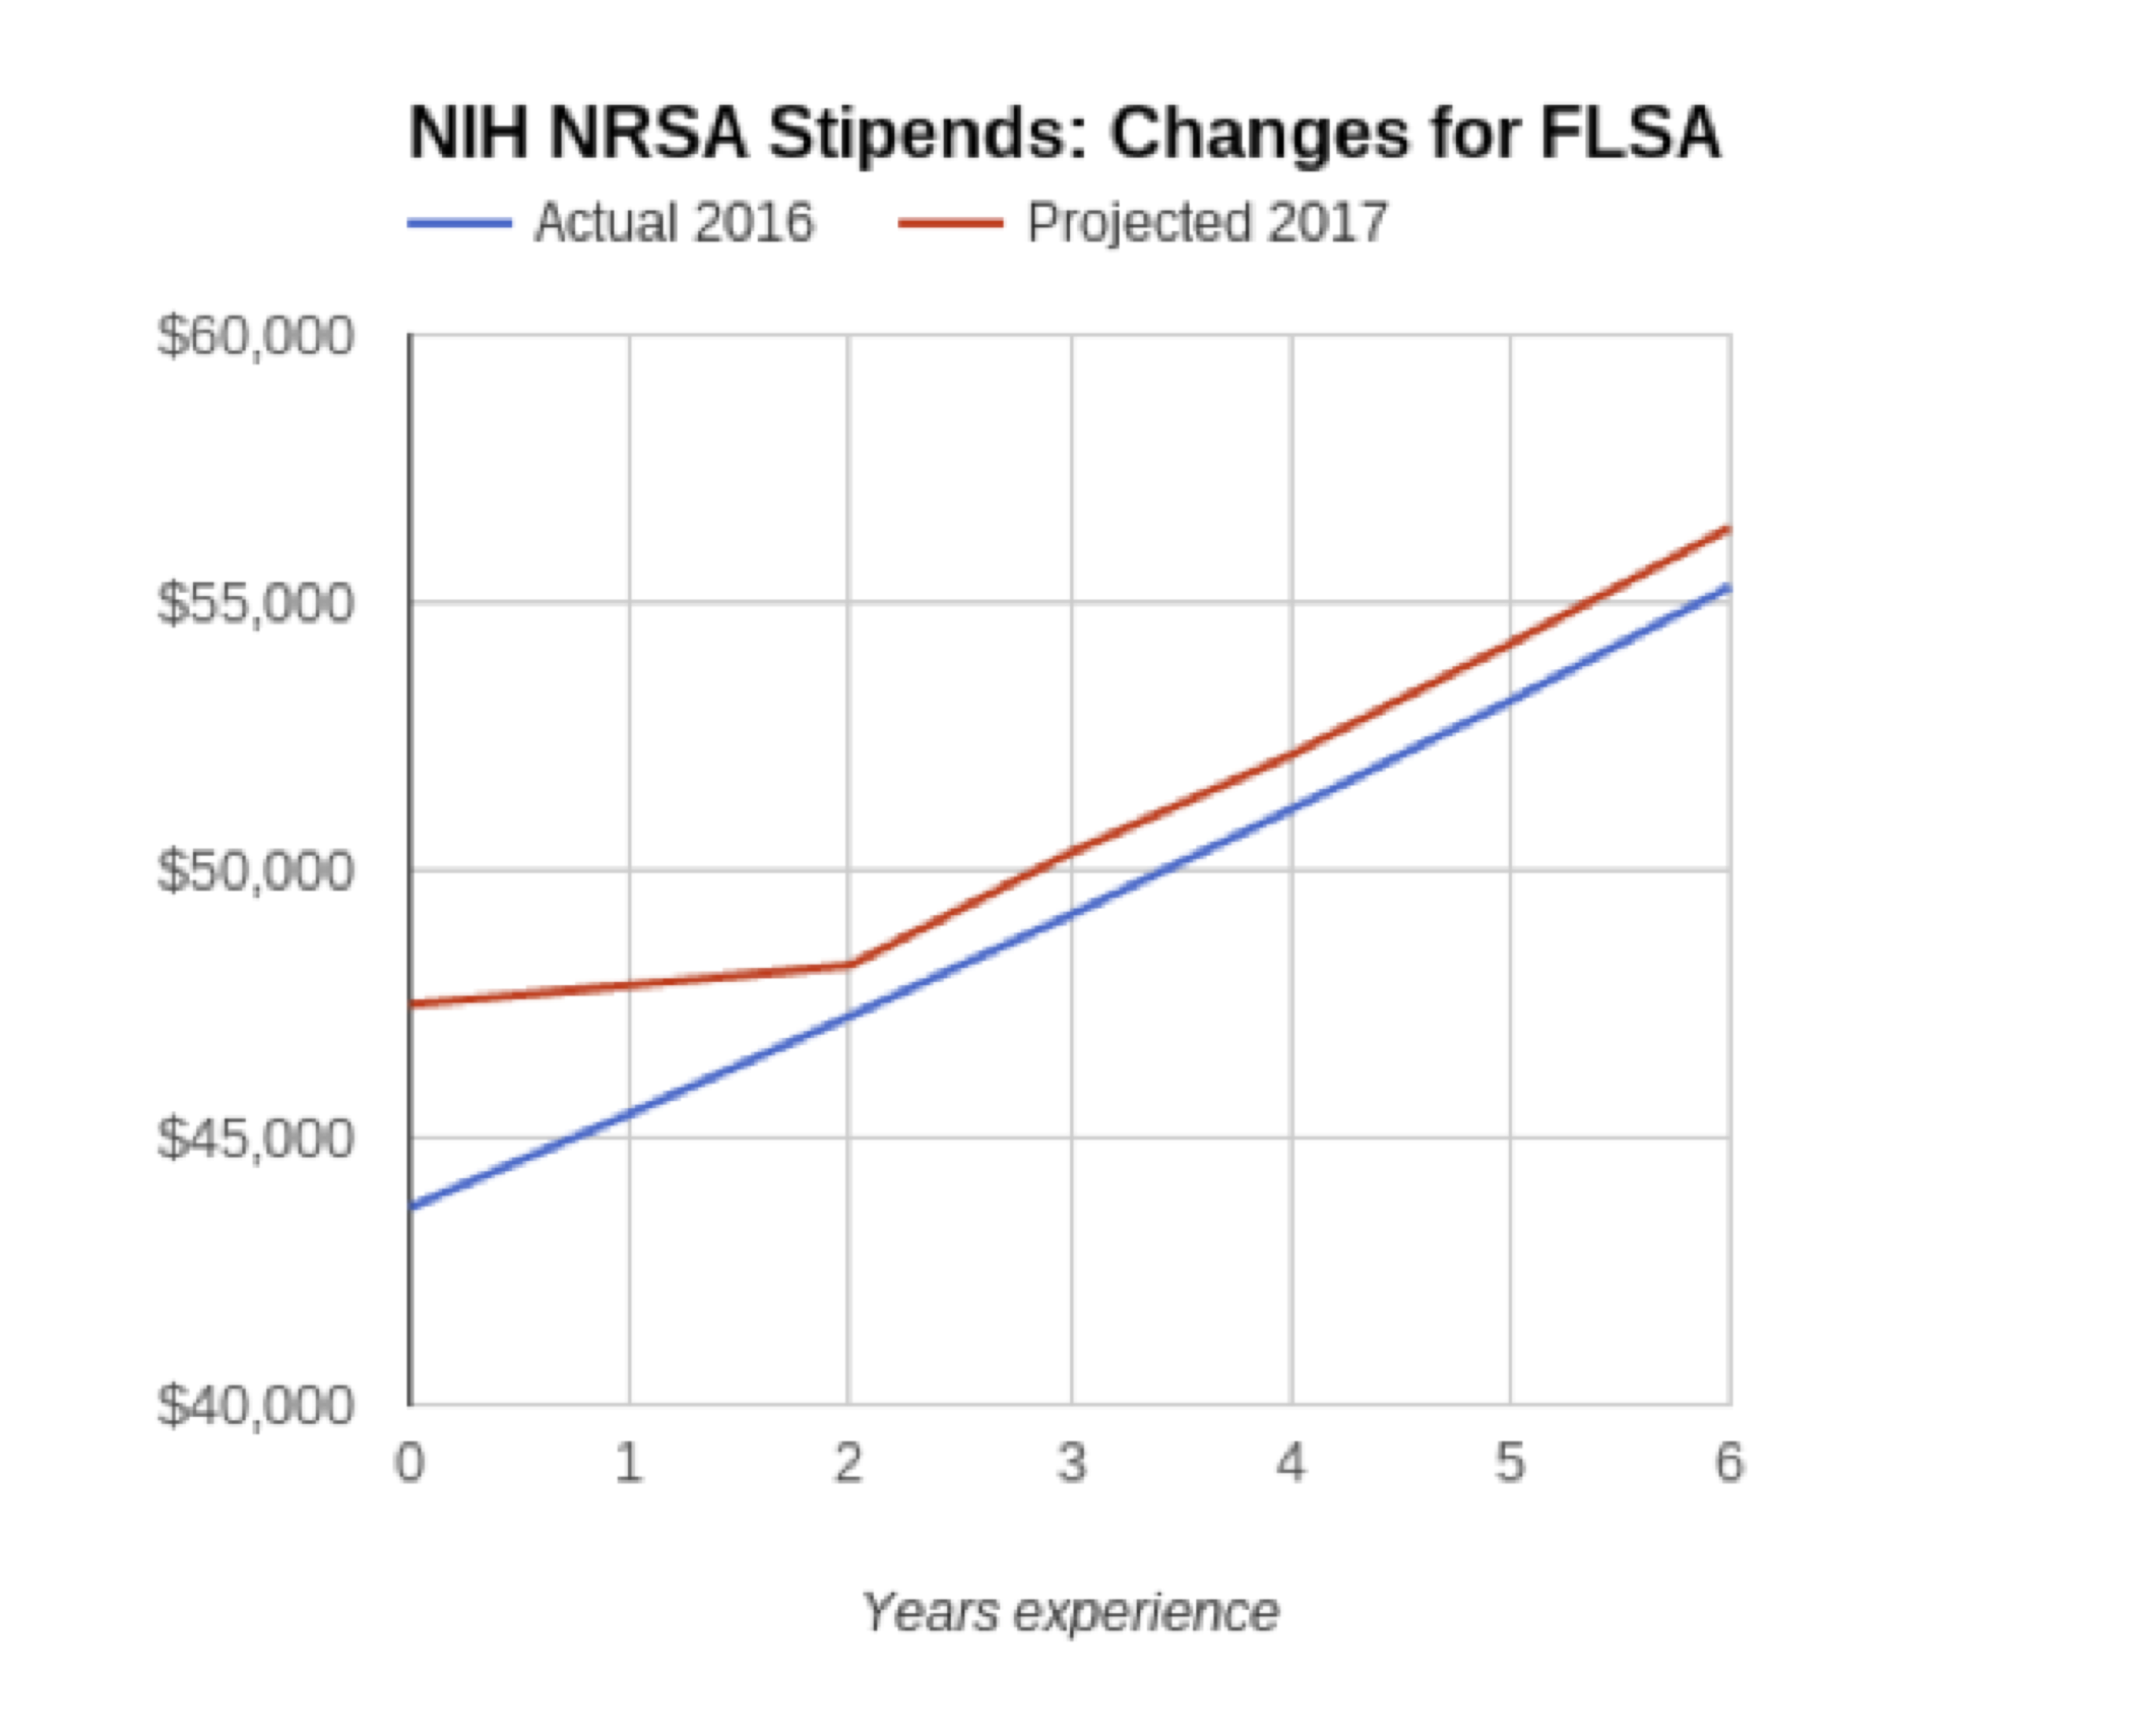 Projected NIH NRSA Stipend Changes due to FLSA